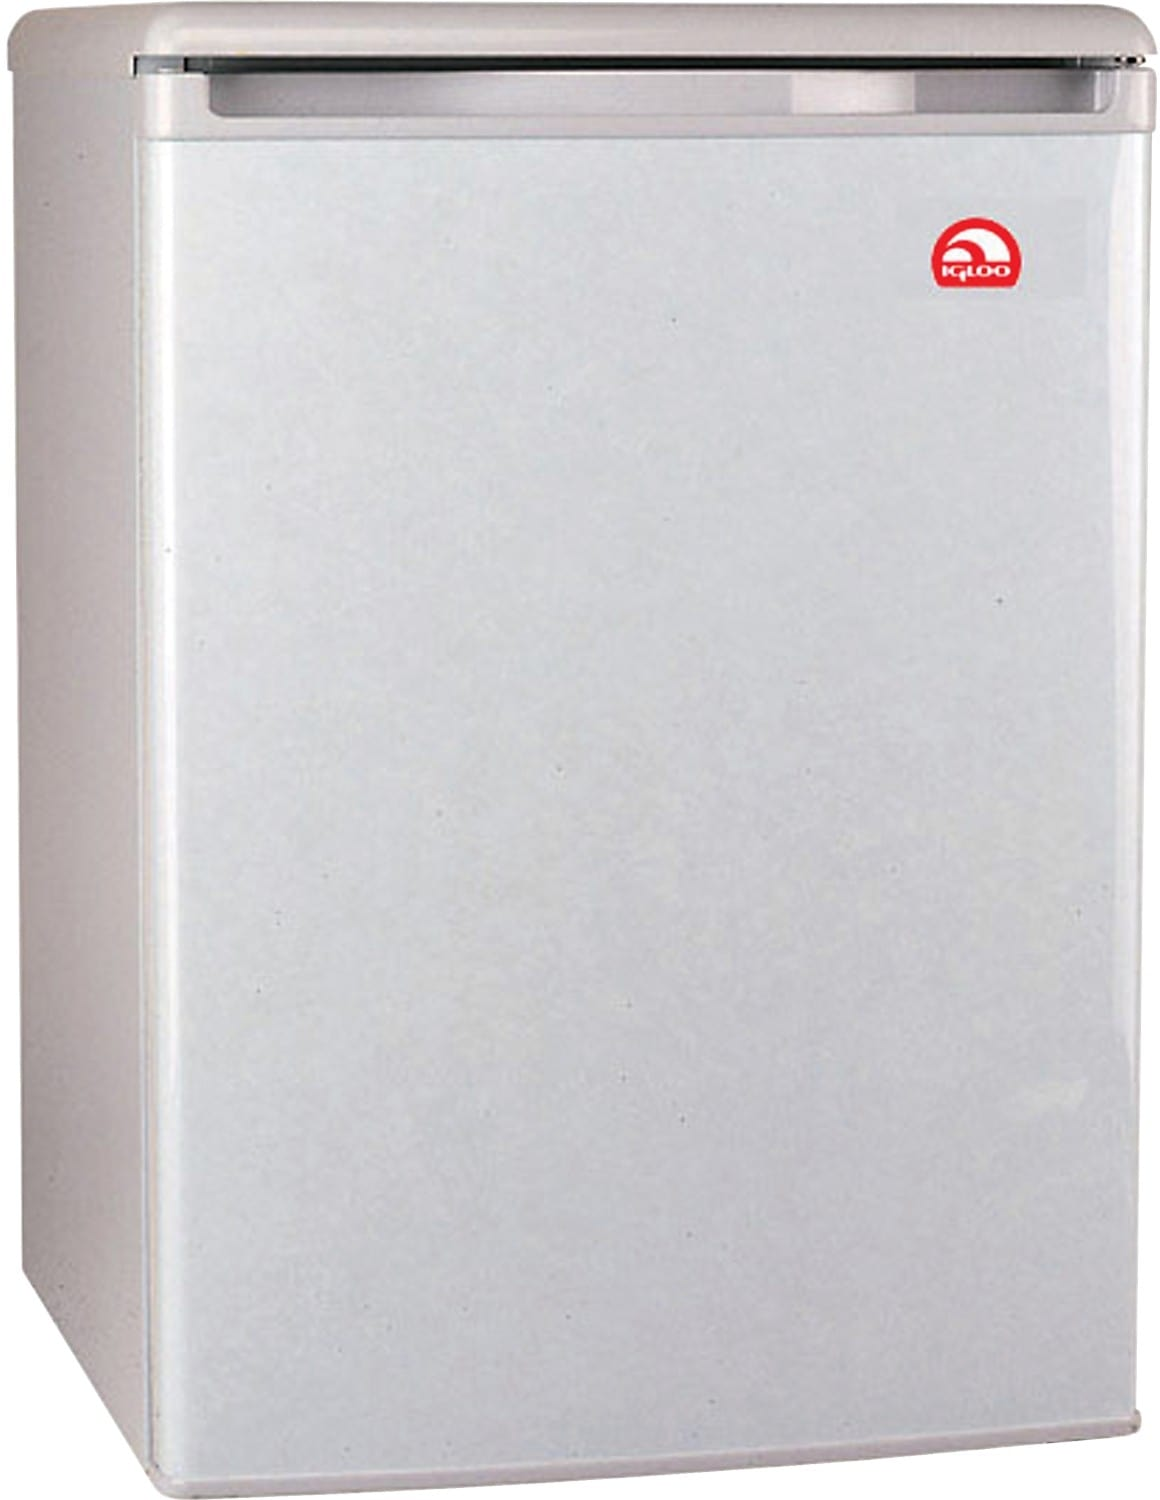 Refrigerators and Freezers - Igloo 3.2 Cu. Ft. Compact Refrigerator - White